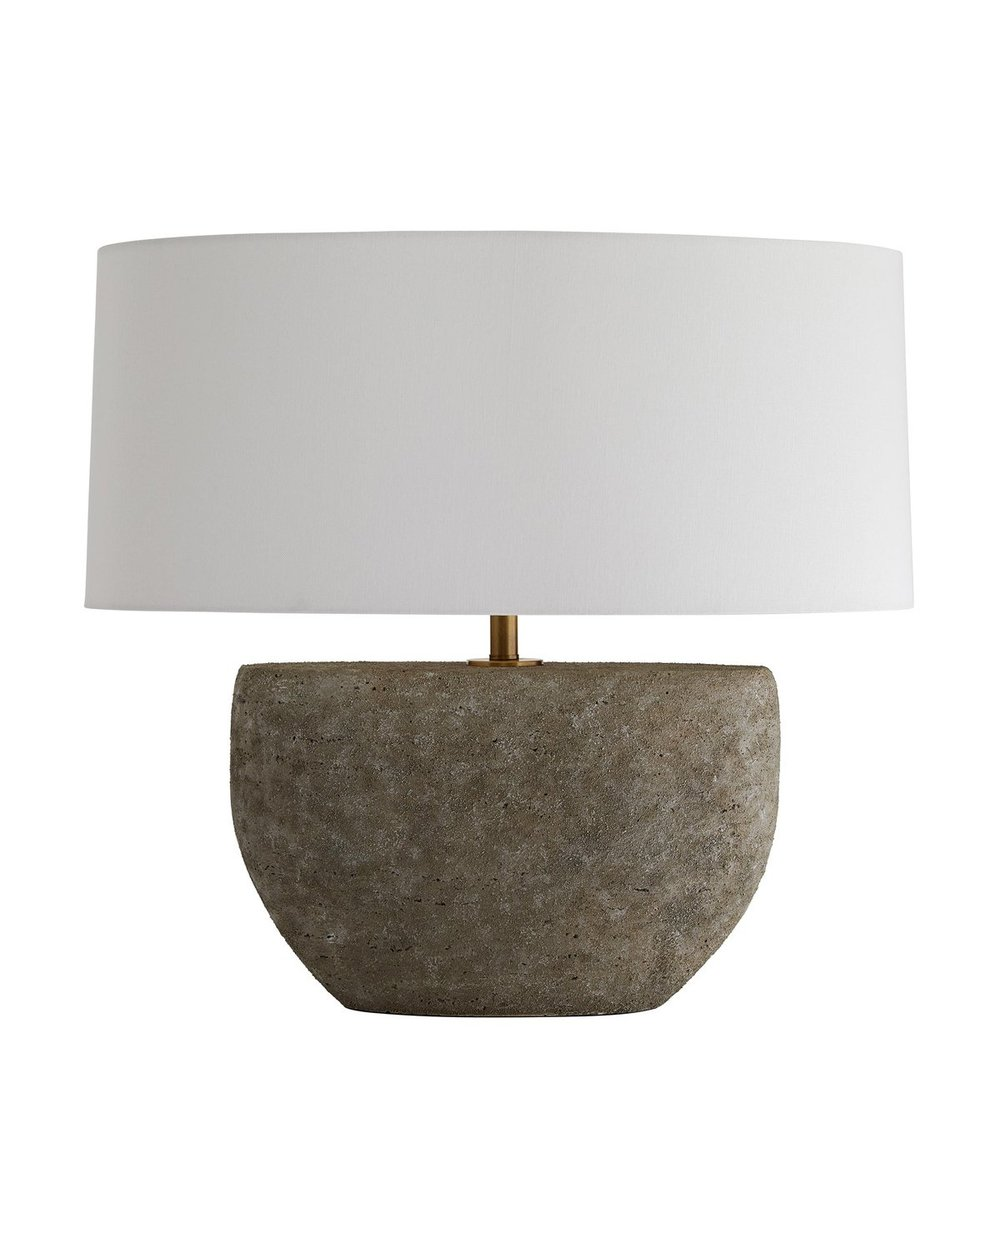 Textured, geometric Odessa Light from McGee & Co. | mcgeeandco.com